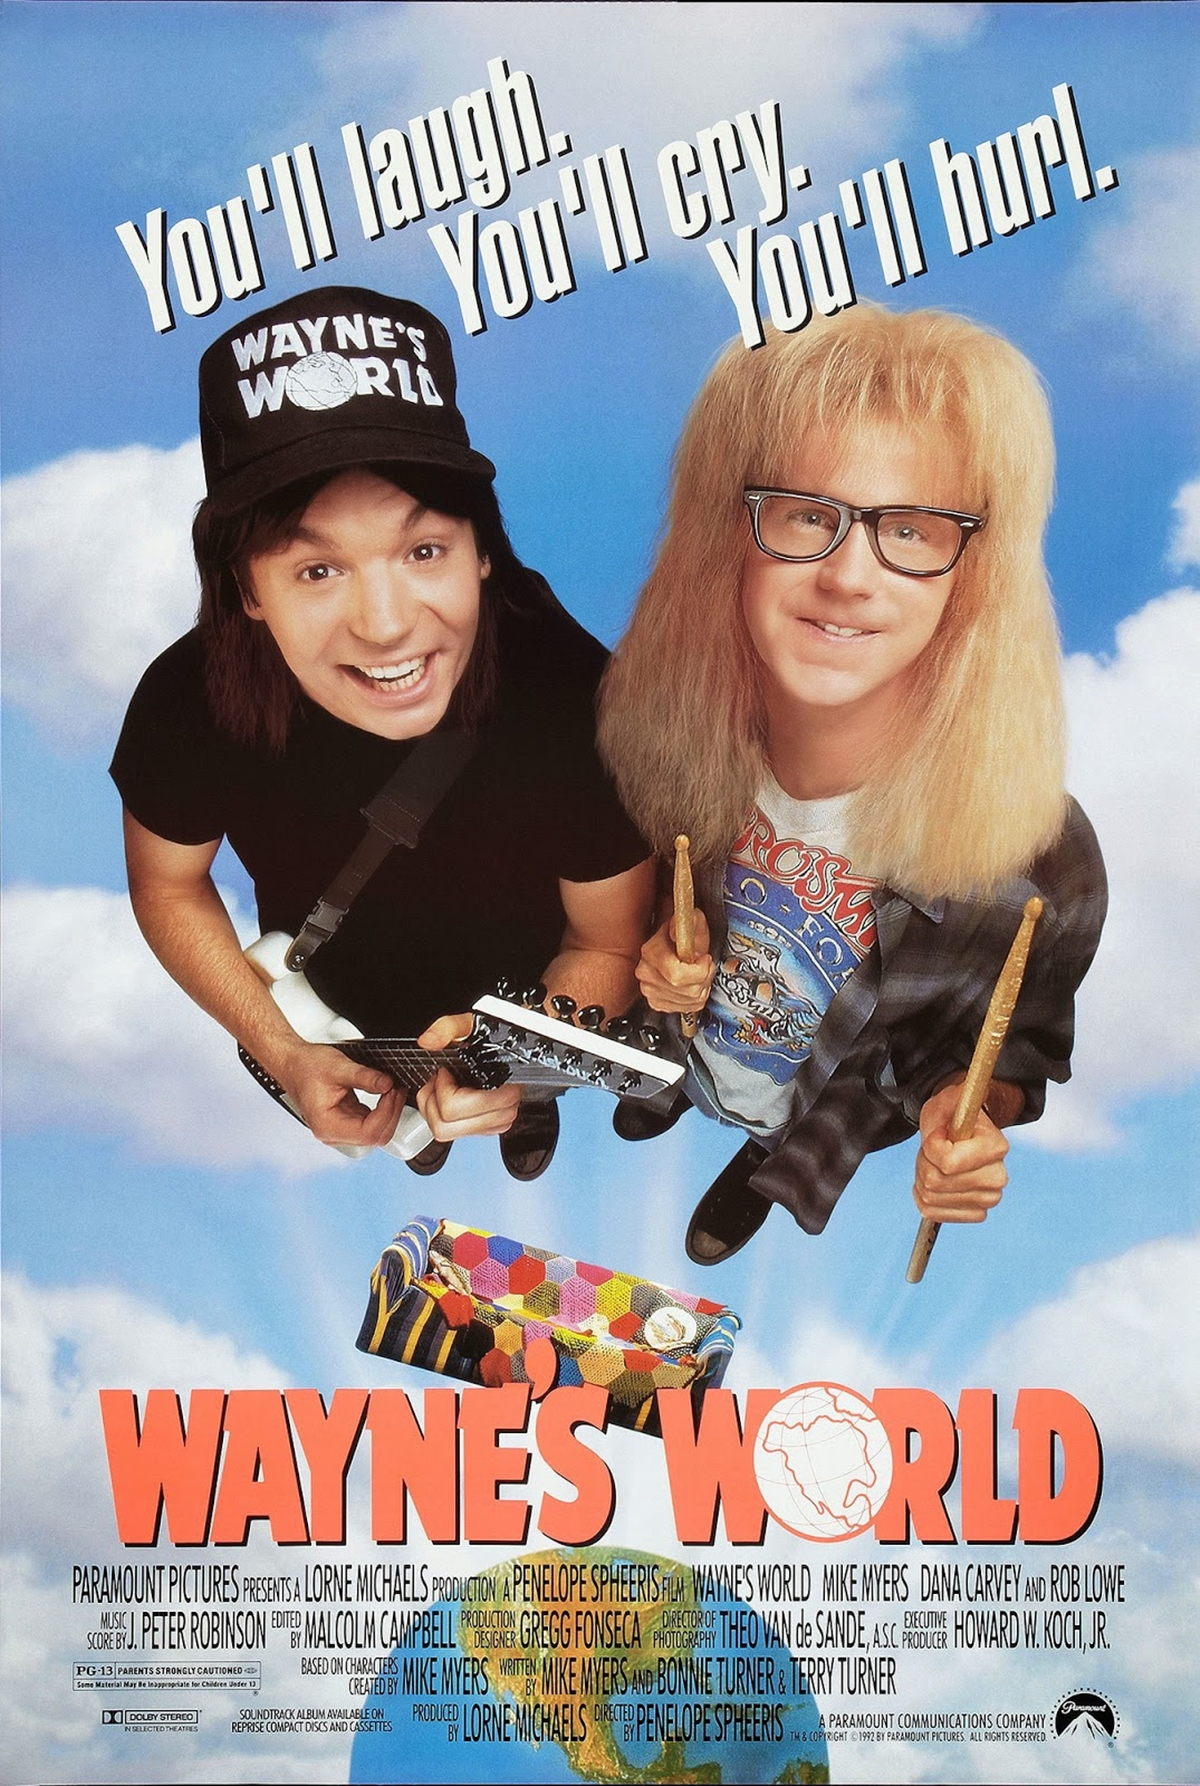 9 12 15 Things You May Not Have Realised About Wayne's World